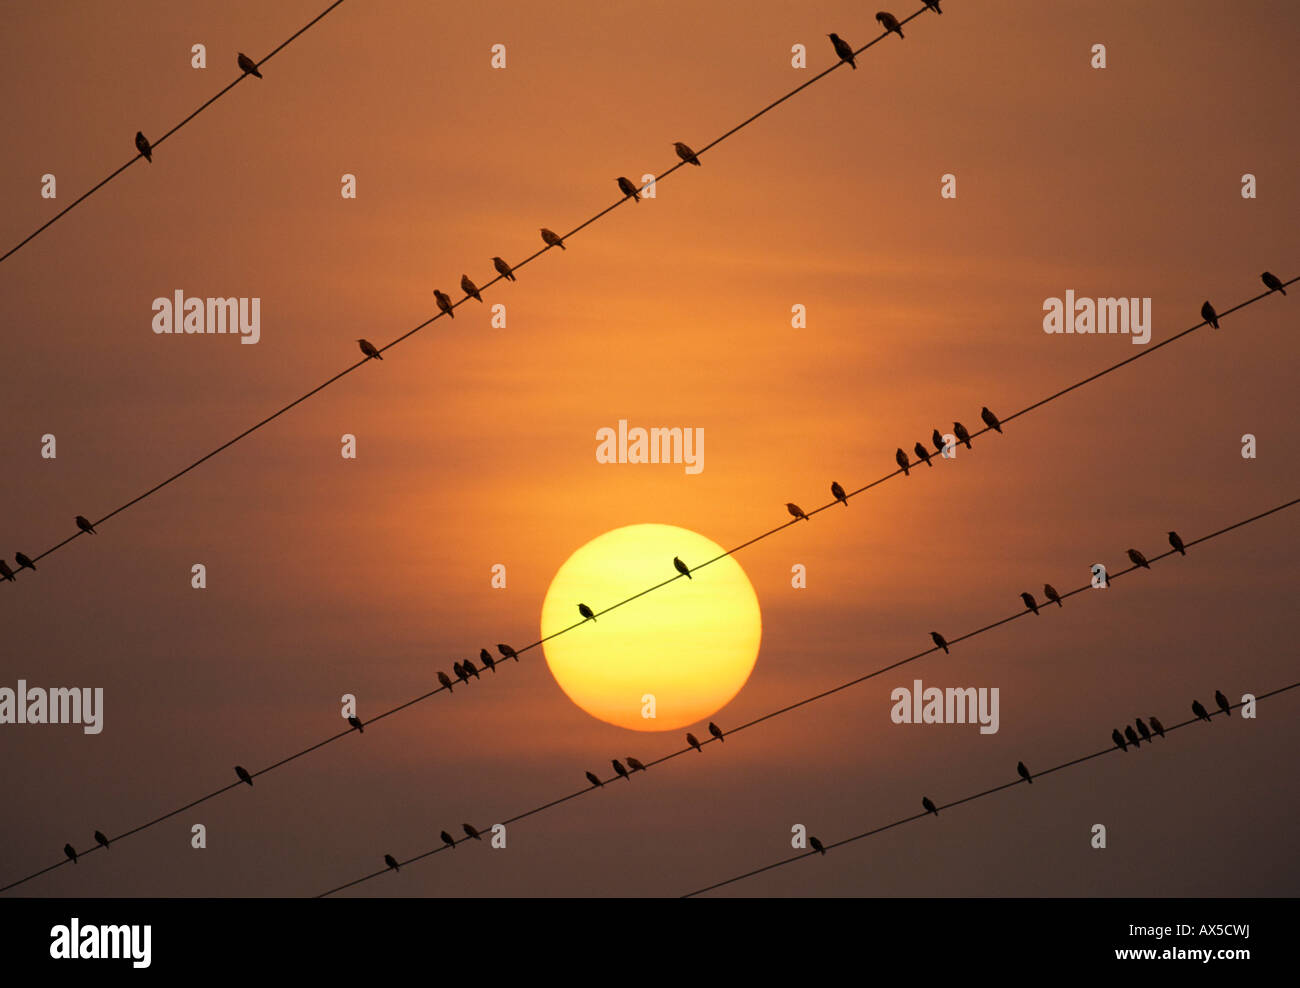 Starlings (Sturnidae) perched on transmission lines against a glowing sun - Stock Image